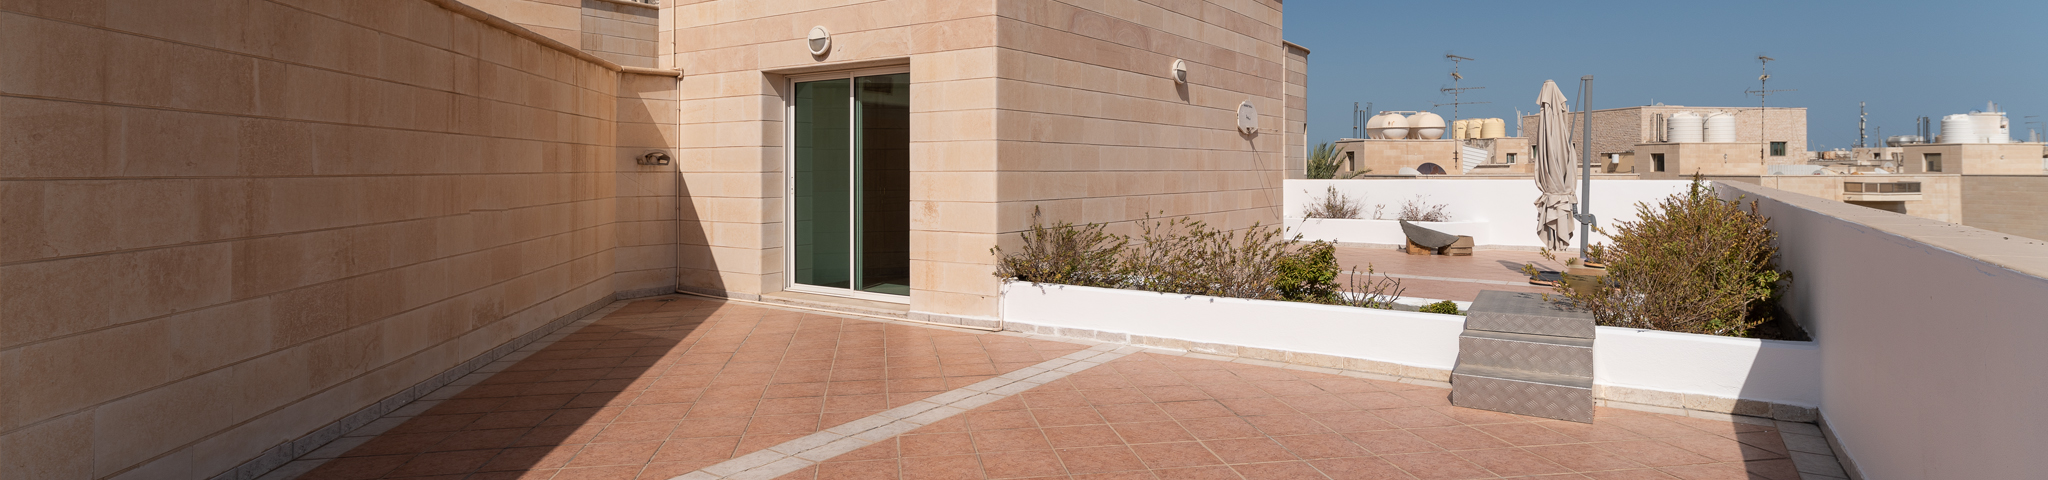 Salwa – great, unfurnished, four bedroom duplex w/private roof terrace